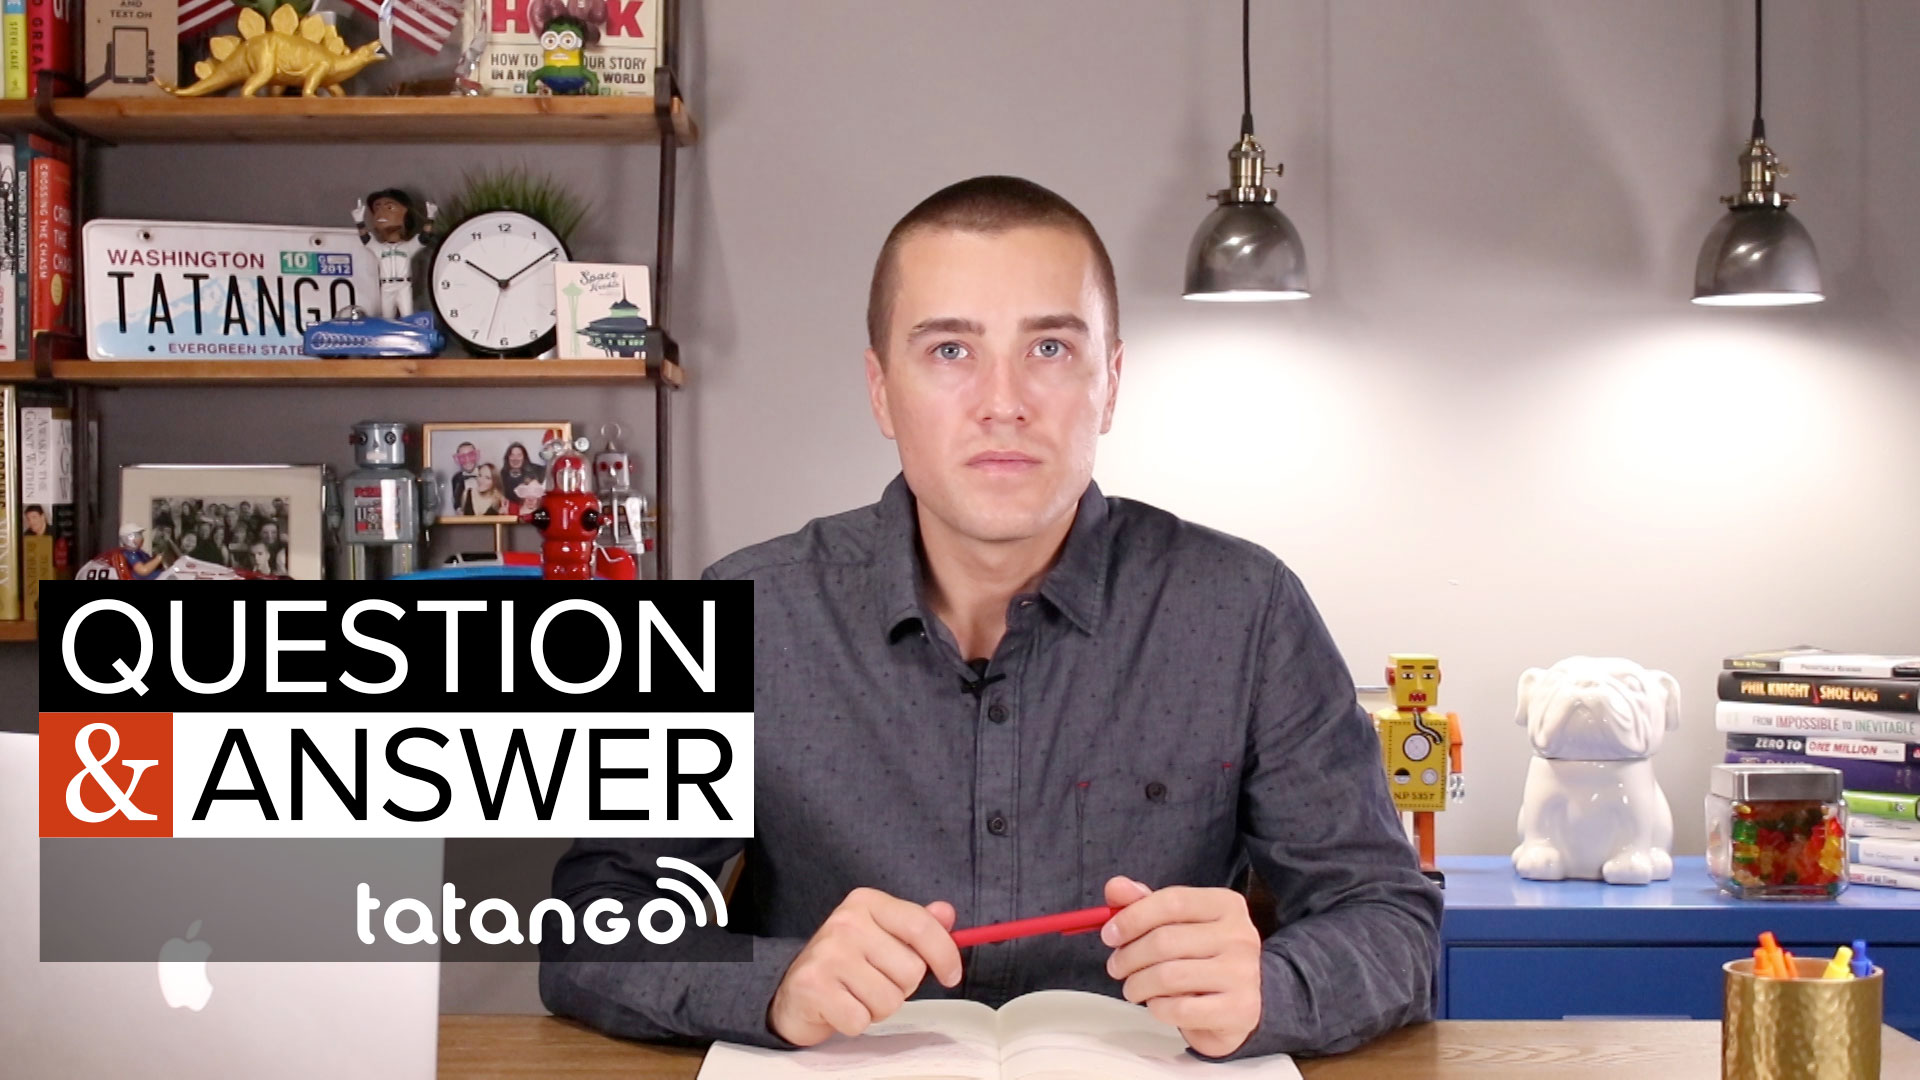 What is the Difference Between Tatango and Twilio?